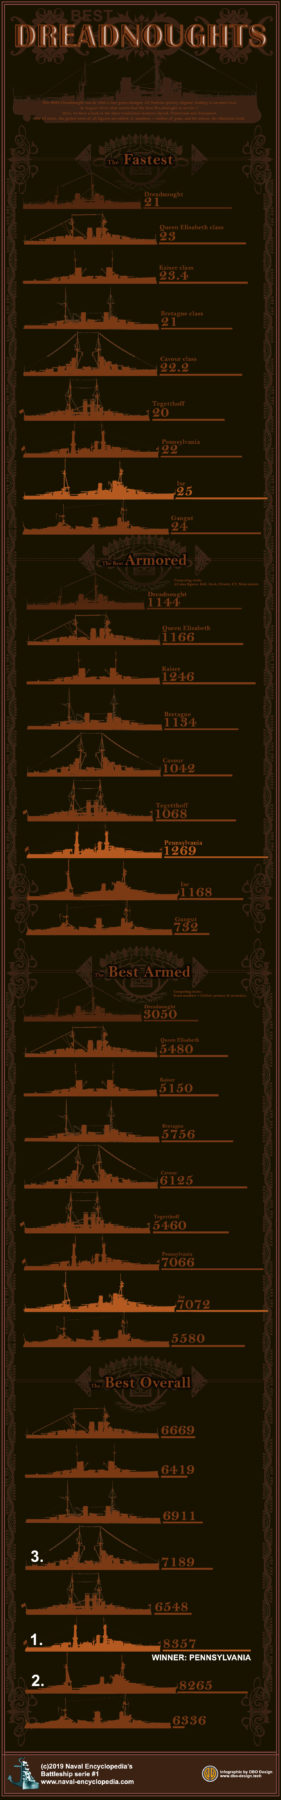 Infographic dreadnoughts